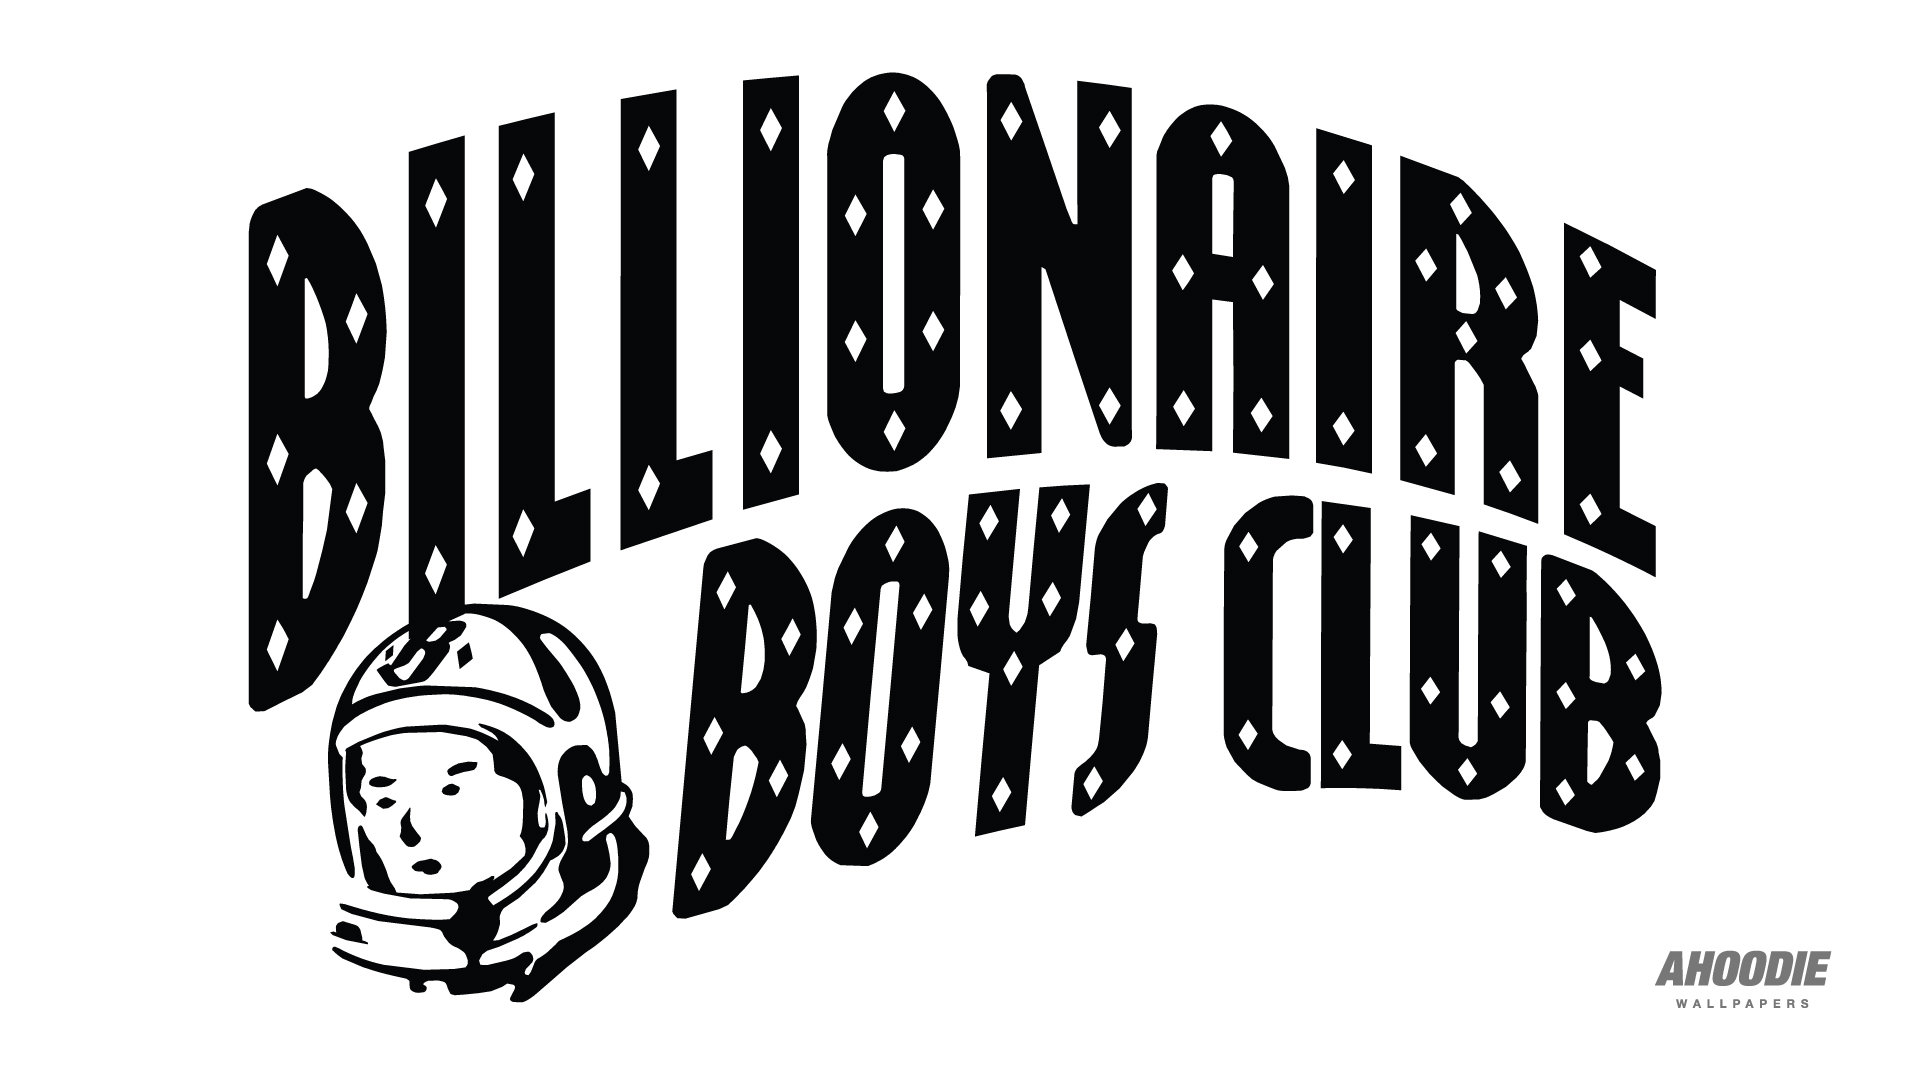 21421661 Goten X Bape in addition Billionaire Boys Club Wallpaper besides Bbc Ice Cream Iphone together with Taron Egerton additionally Supreme6. on billionaire boys club wallpaper